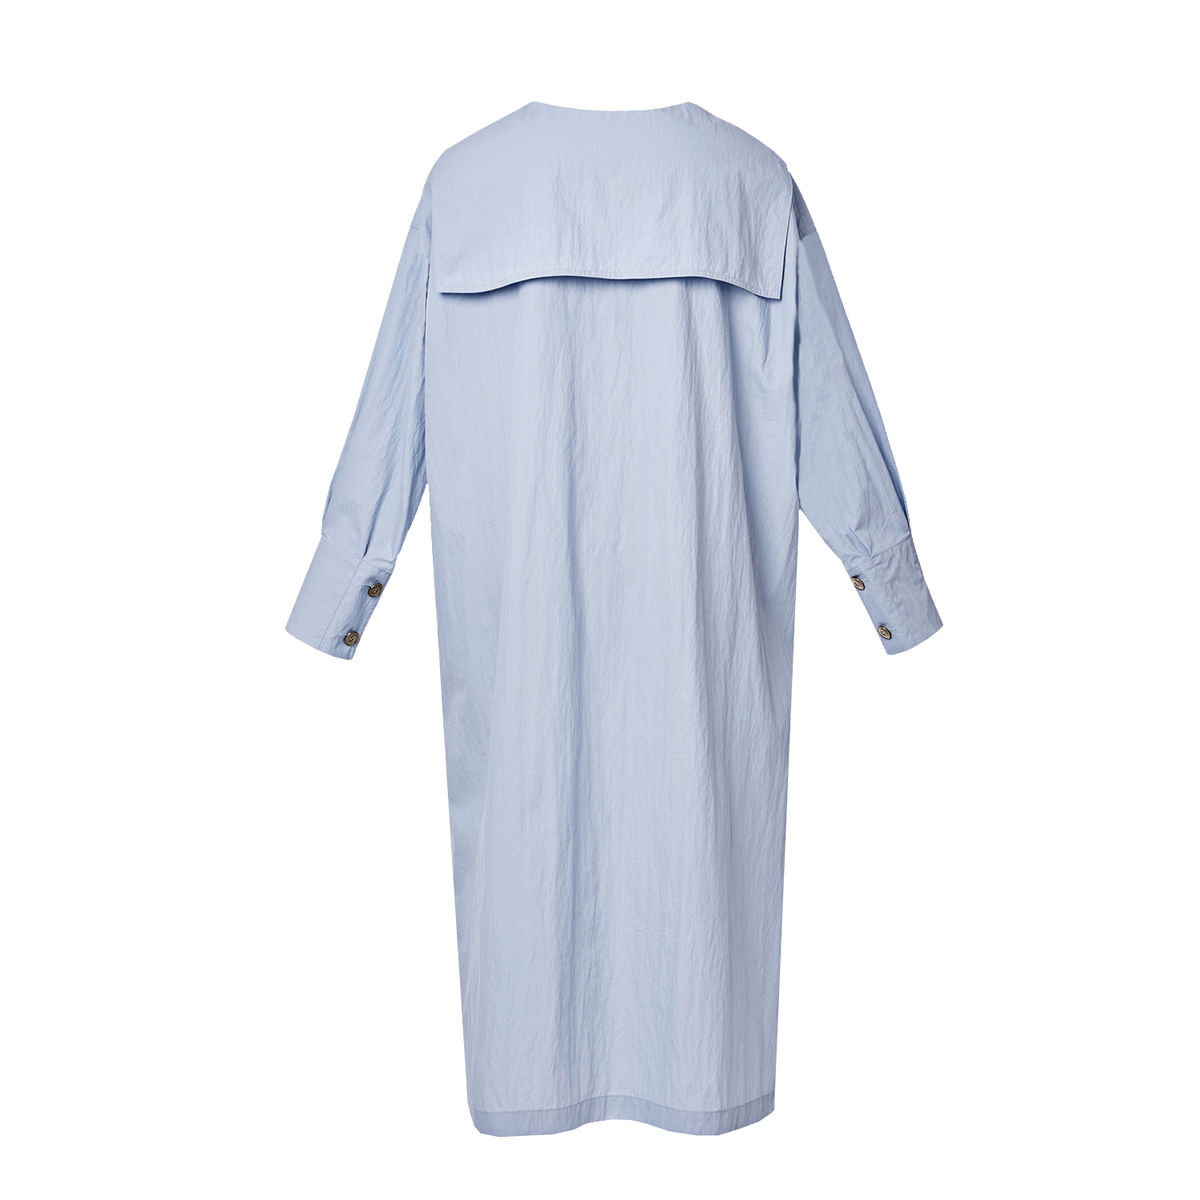 Sailor-collared boxy dress-Powder blue - product images  of